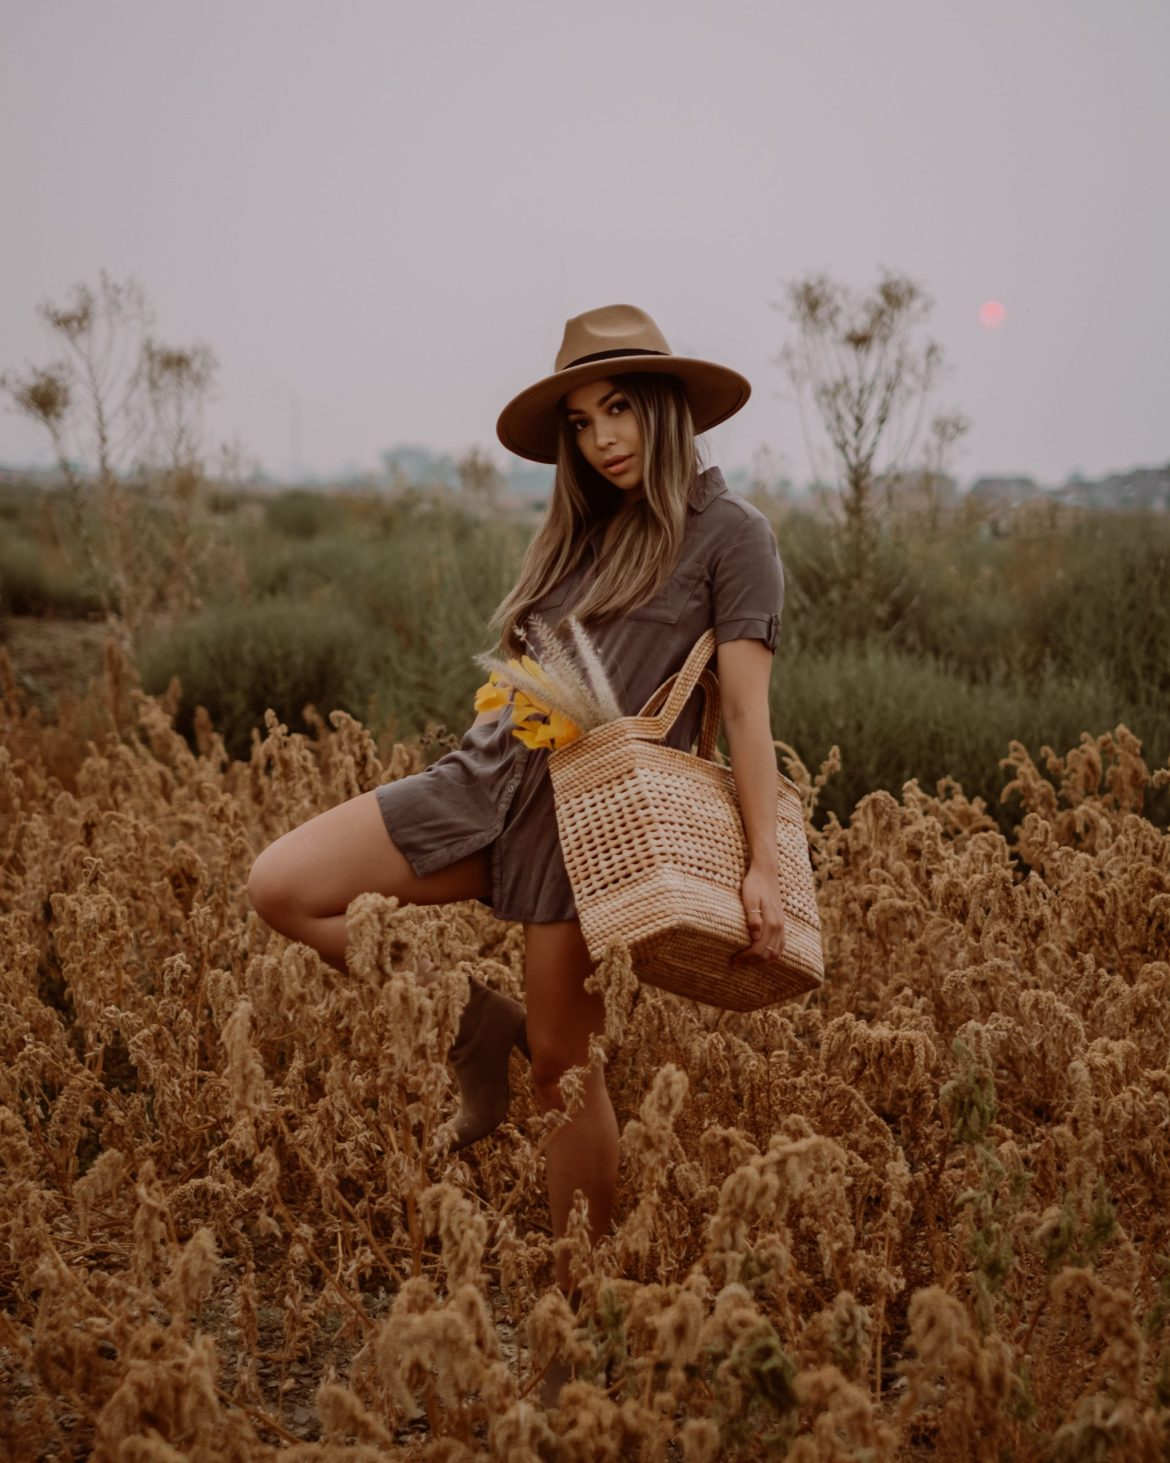 What to do this fall, autumn, photoshoot, aesthetic, pumpkin patch, fall outfit, fall fashion | cindyycheeks